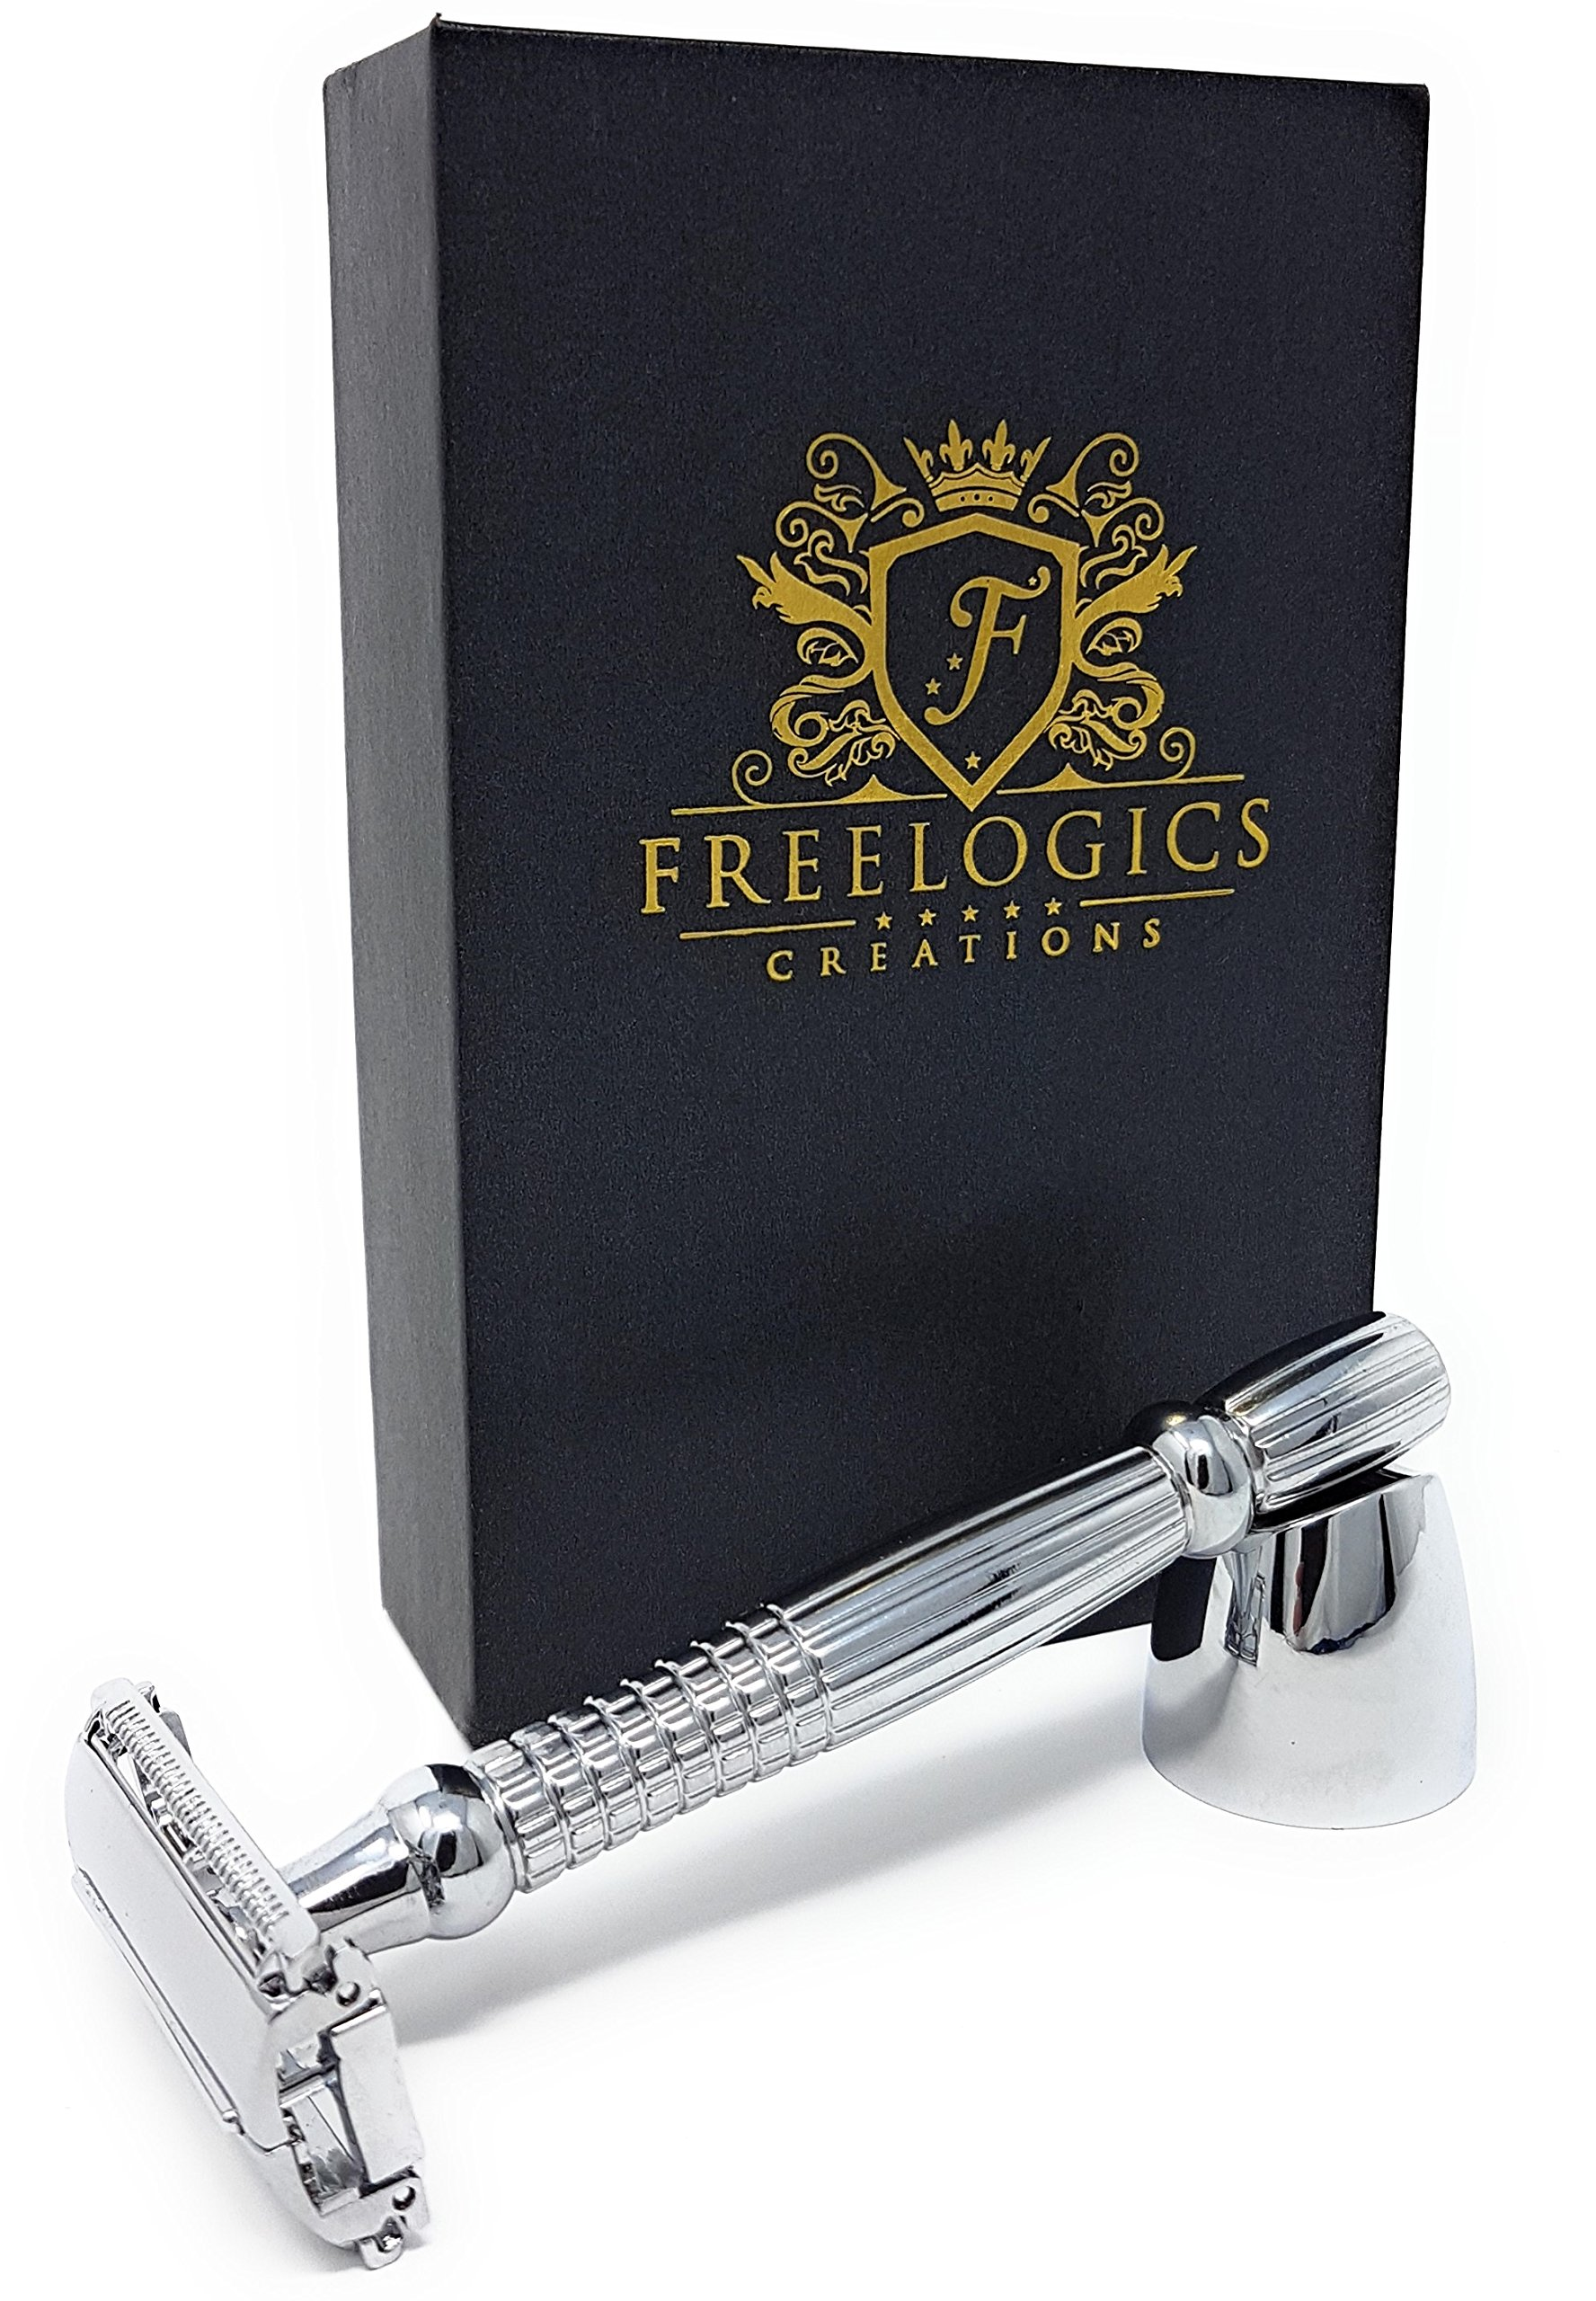 FREELOGICS Double Edge Safety Razor Kit with Stand -Extra Long Handled - Traditional Straight Butterfly Best Razors for Men or Women - Stainless Steel Double Edge Shaving Blades with Refills Holders